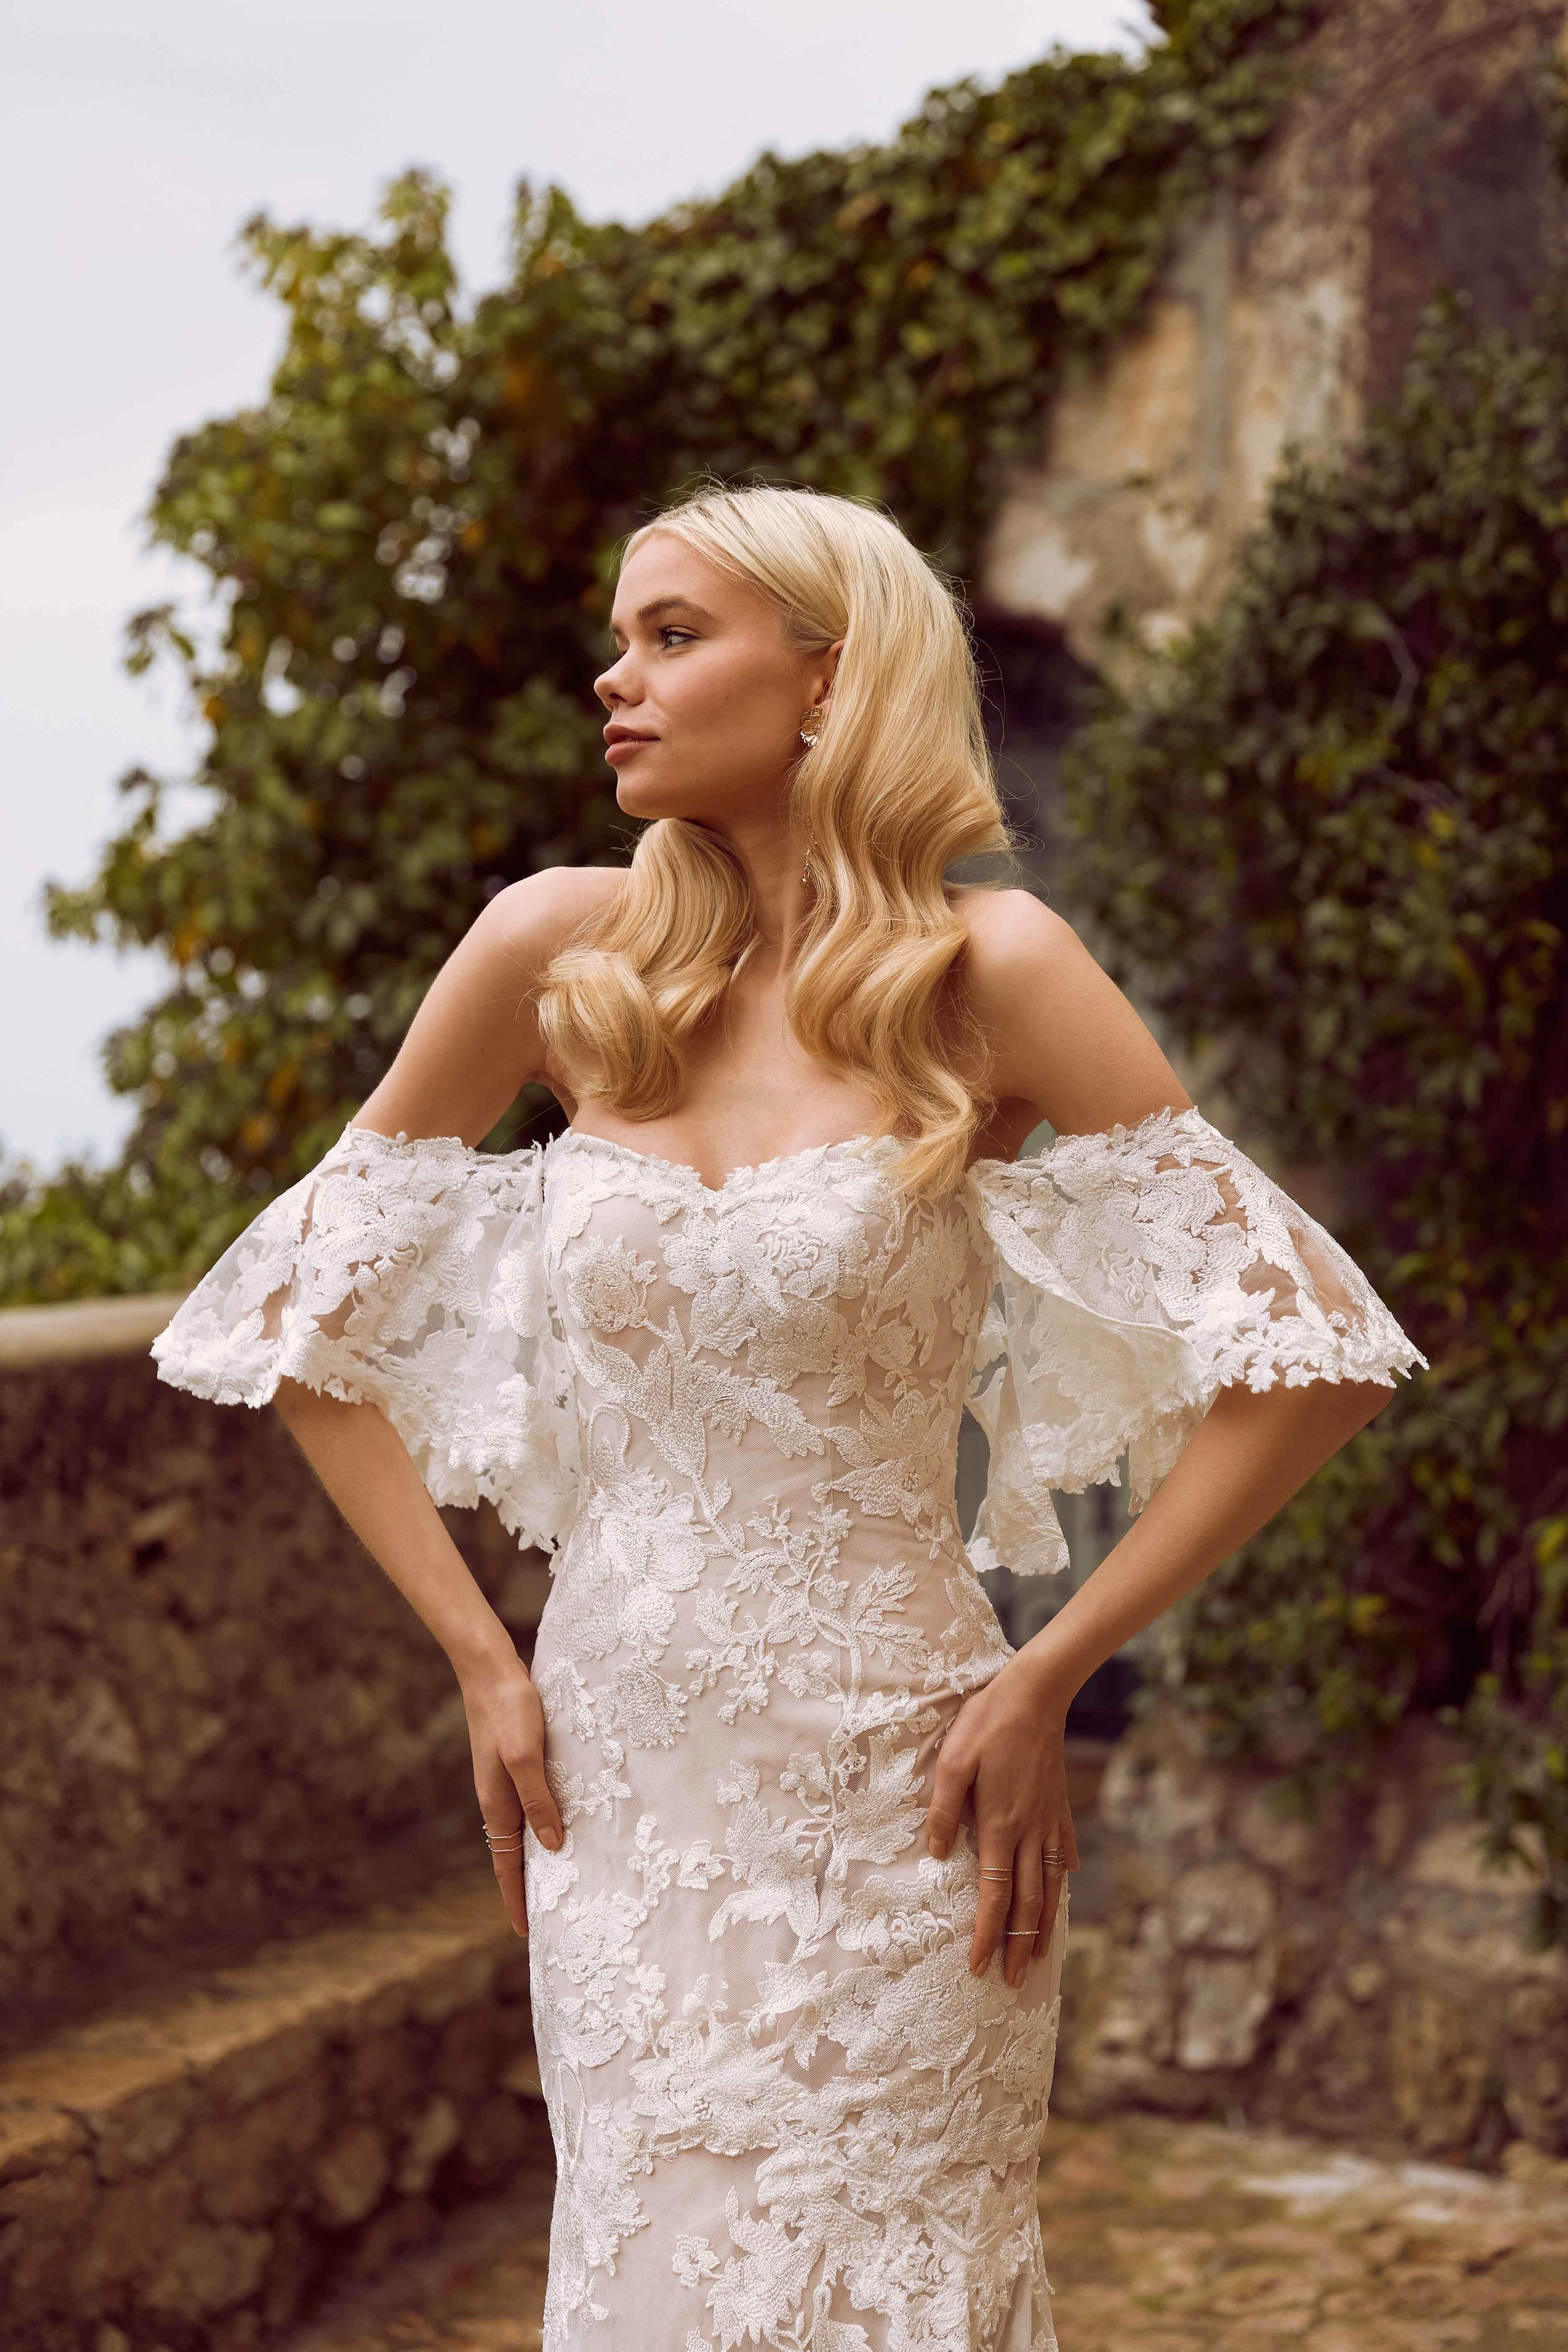 RIVIERA-CAMPAIGN-FOR-MADI-LANE-BRIDAL-SHOT-IN-SOUTH-OF-FRANCE10.jpg